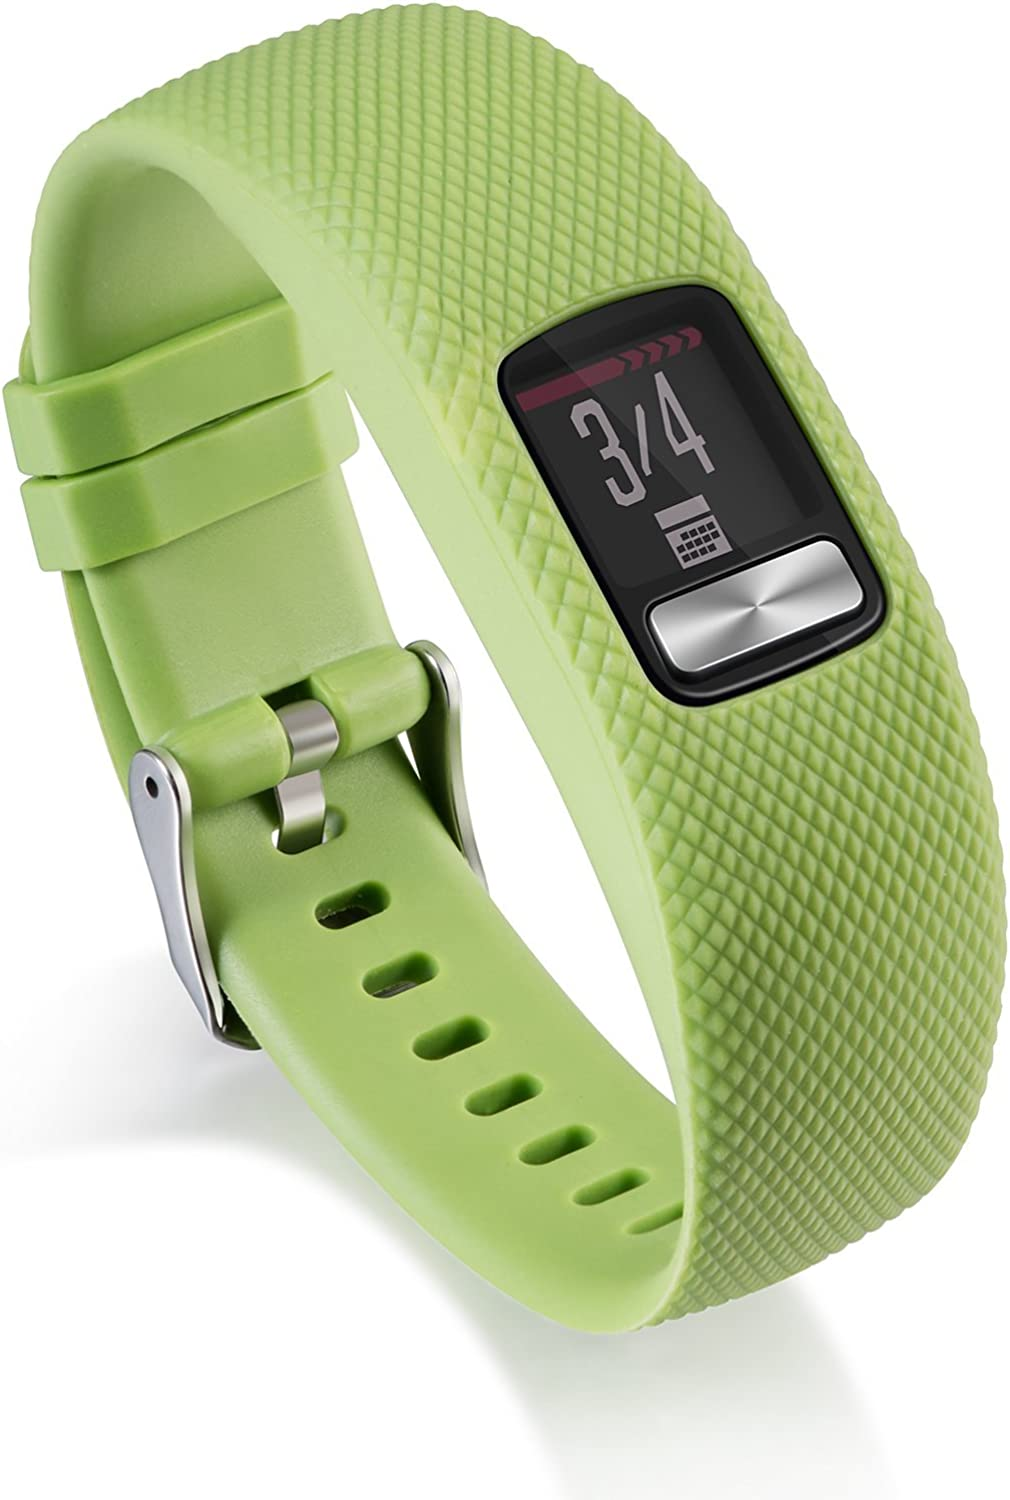 AWINNER Bands Compatible for Garmin vivofit 4,Replacement Sport Colourful Band for vivofit 4 Activity Tracker (Green, Small)